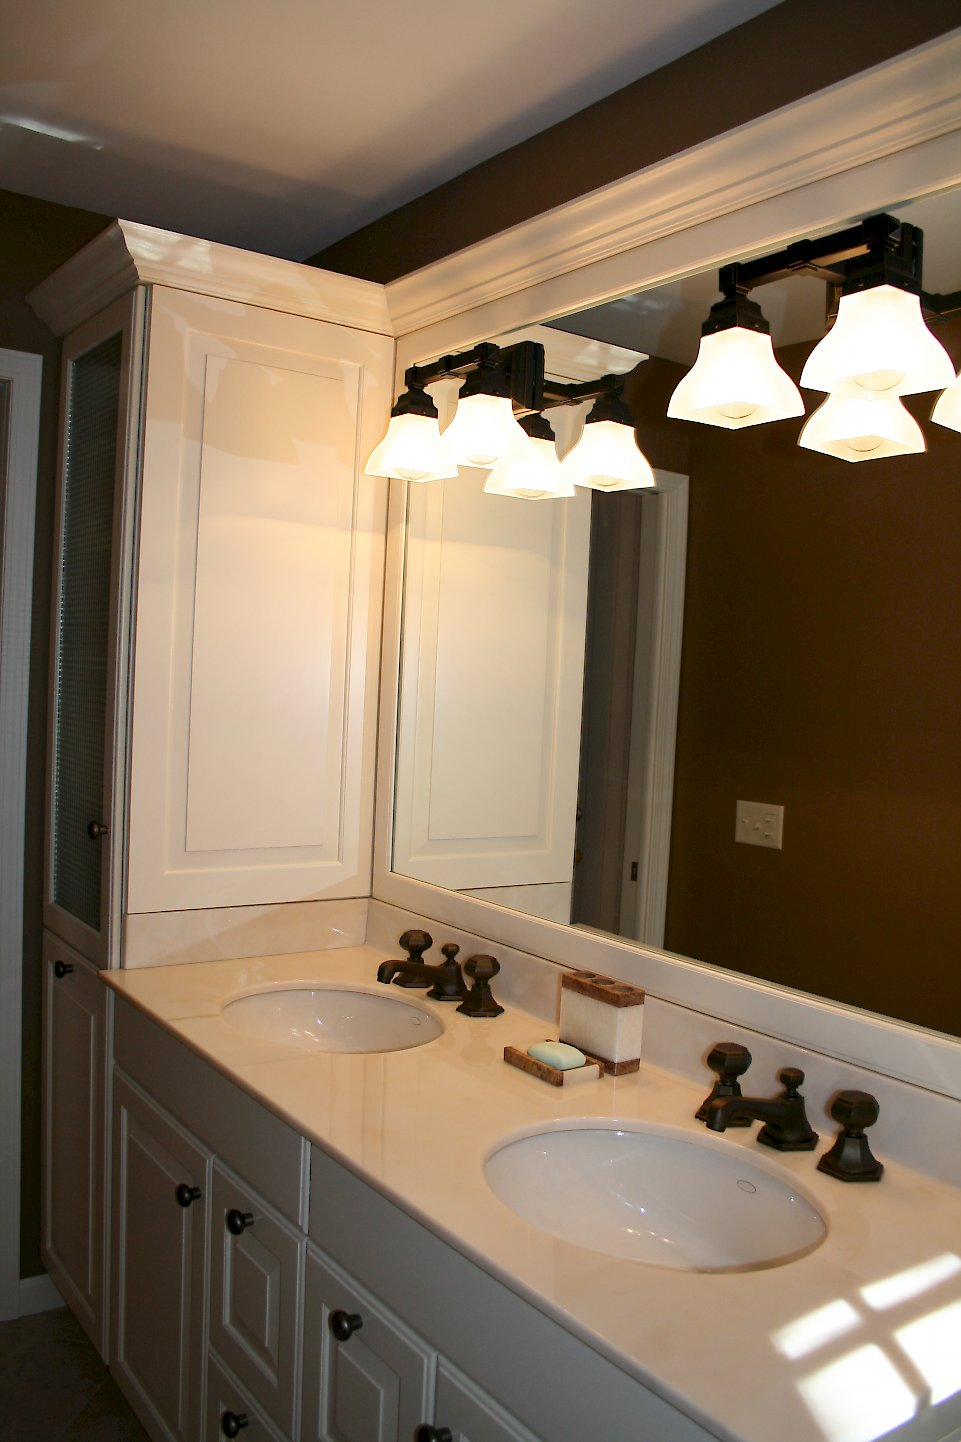 Double bowl vanity with undermount sinks.